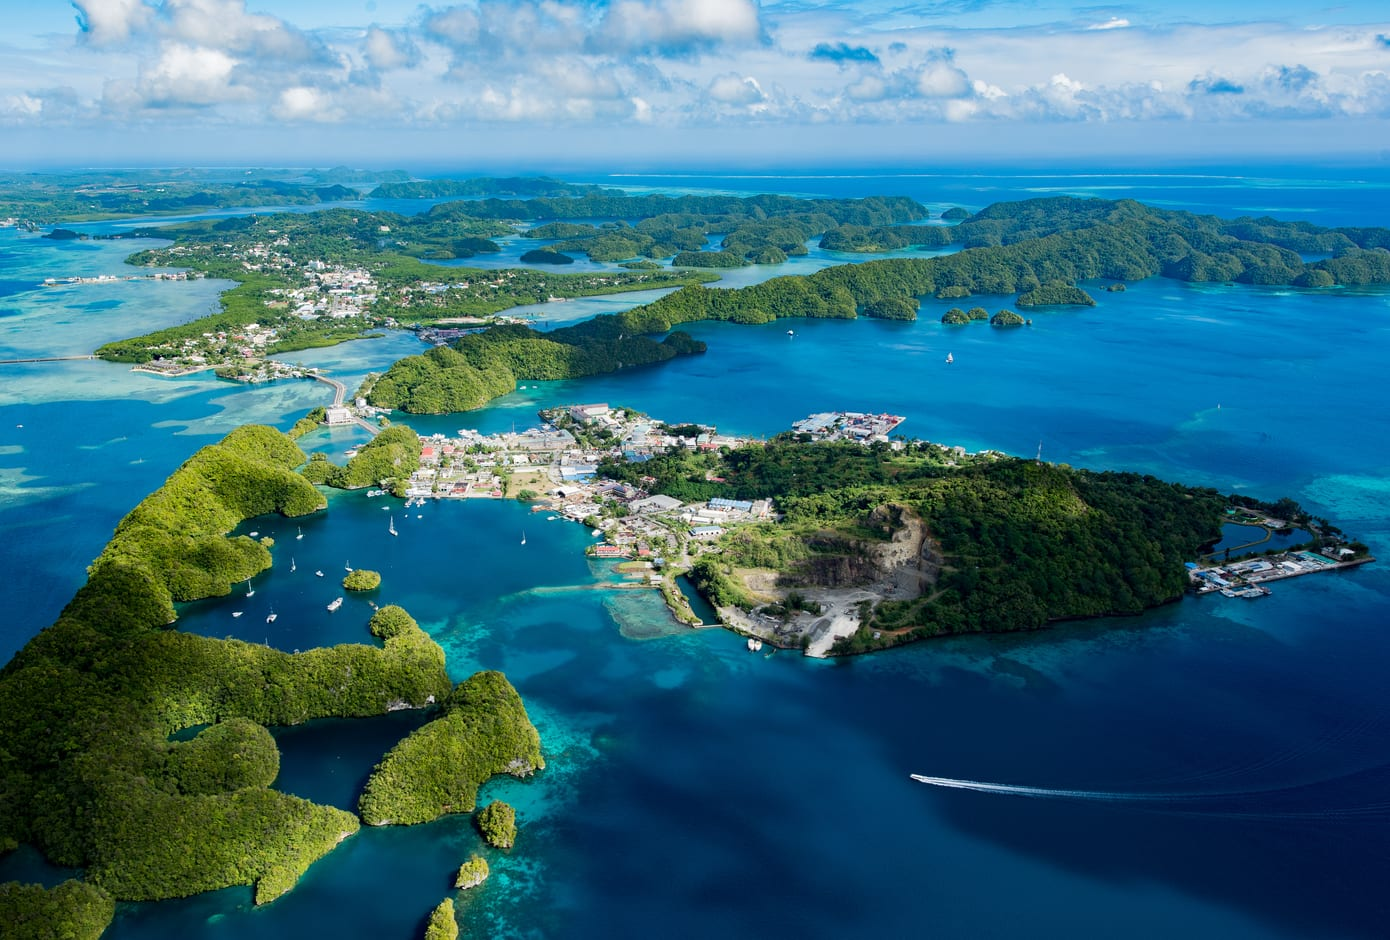 Aerial view of the paradisiac Palau Malakal island, in Oceania.